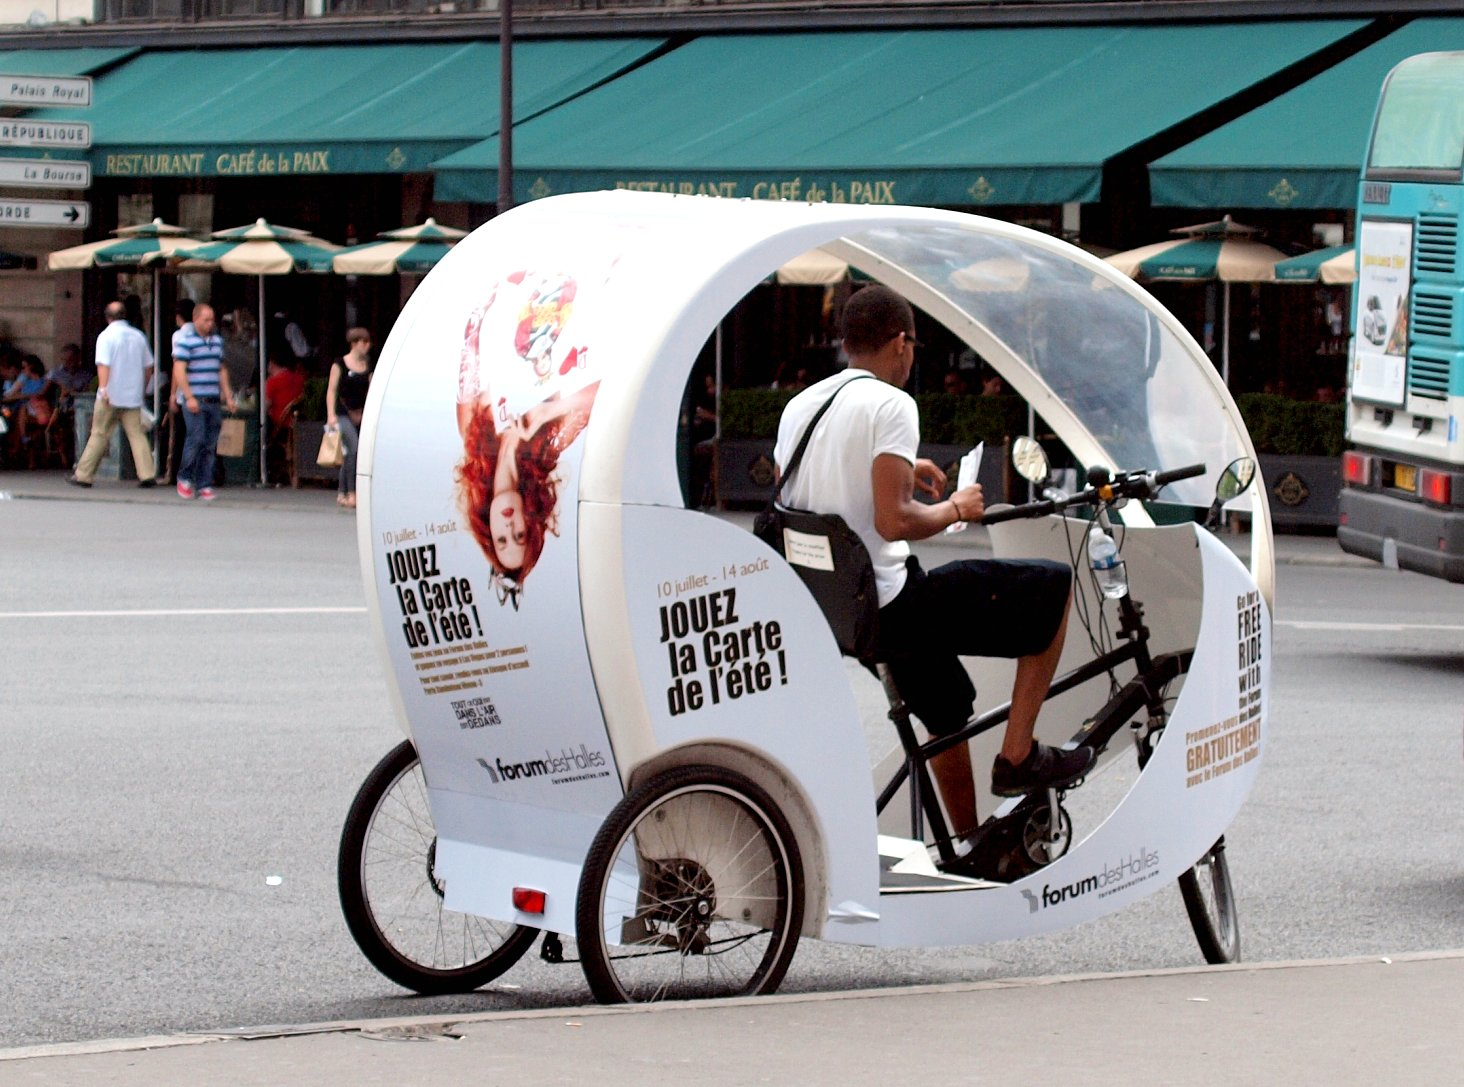 Bicycle taxi in Paris France